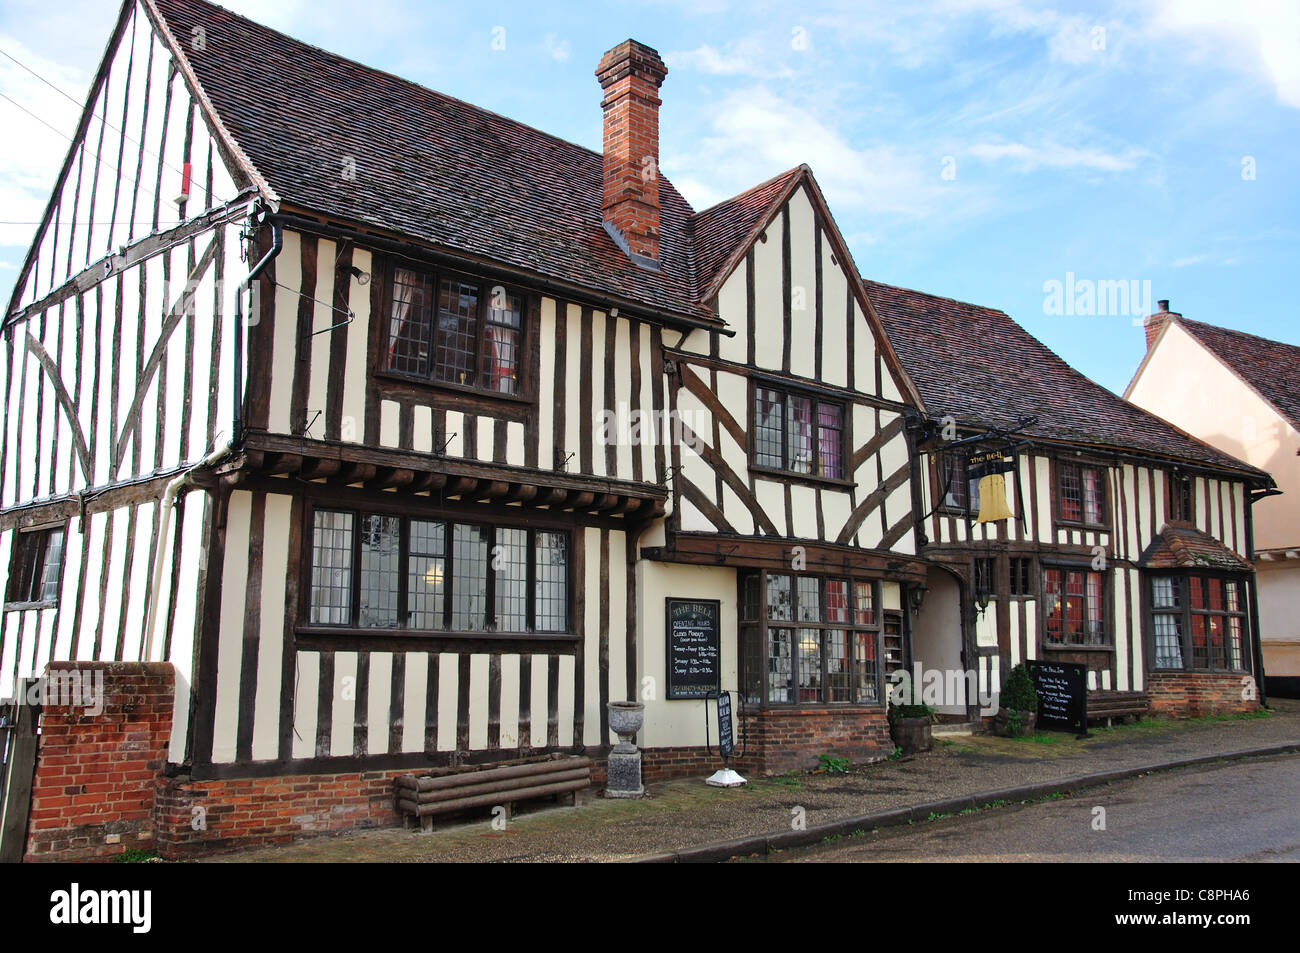 14th century The Bell Inn, The Street, Kersey, Suffolk, England, United Kingdom - Stock Image